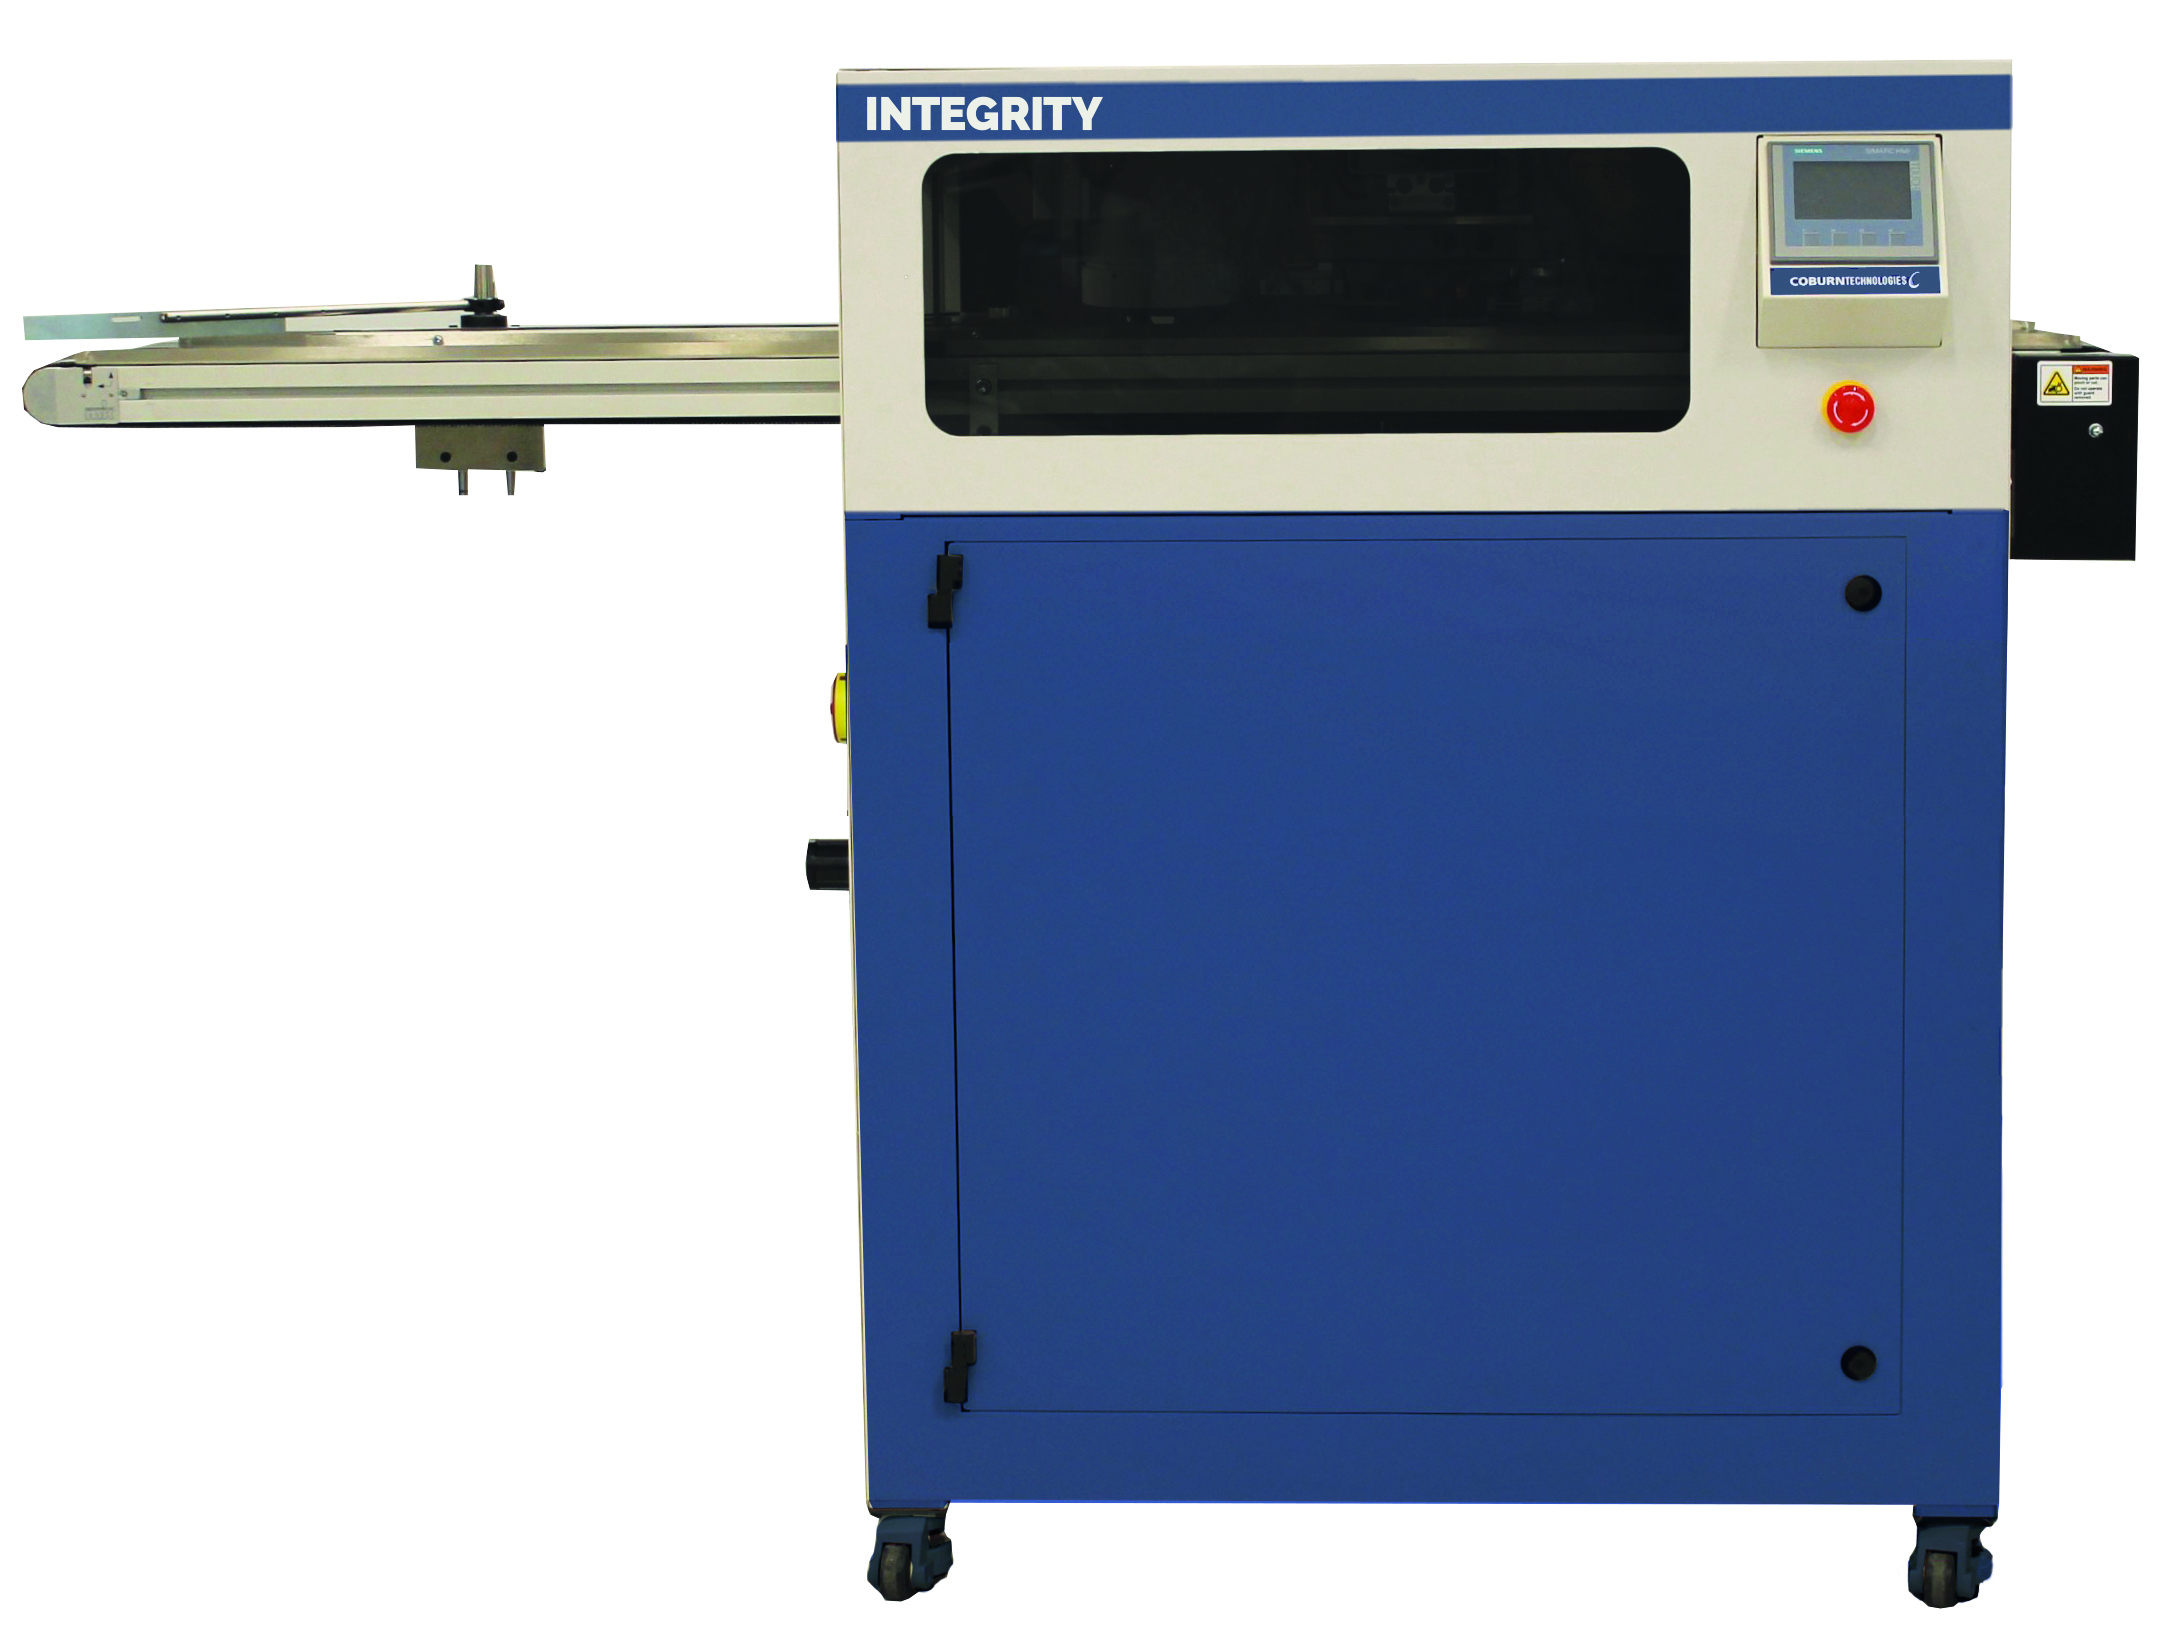 The Integrity Alloy Recovery System, Coburn Technologies' novel alloy recovery technology